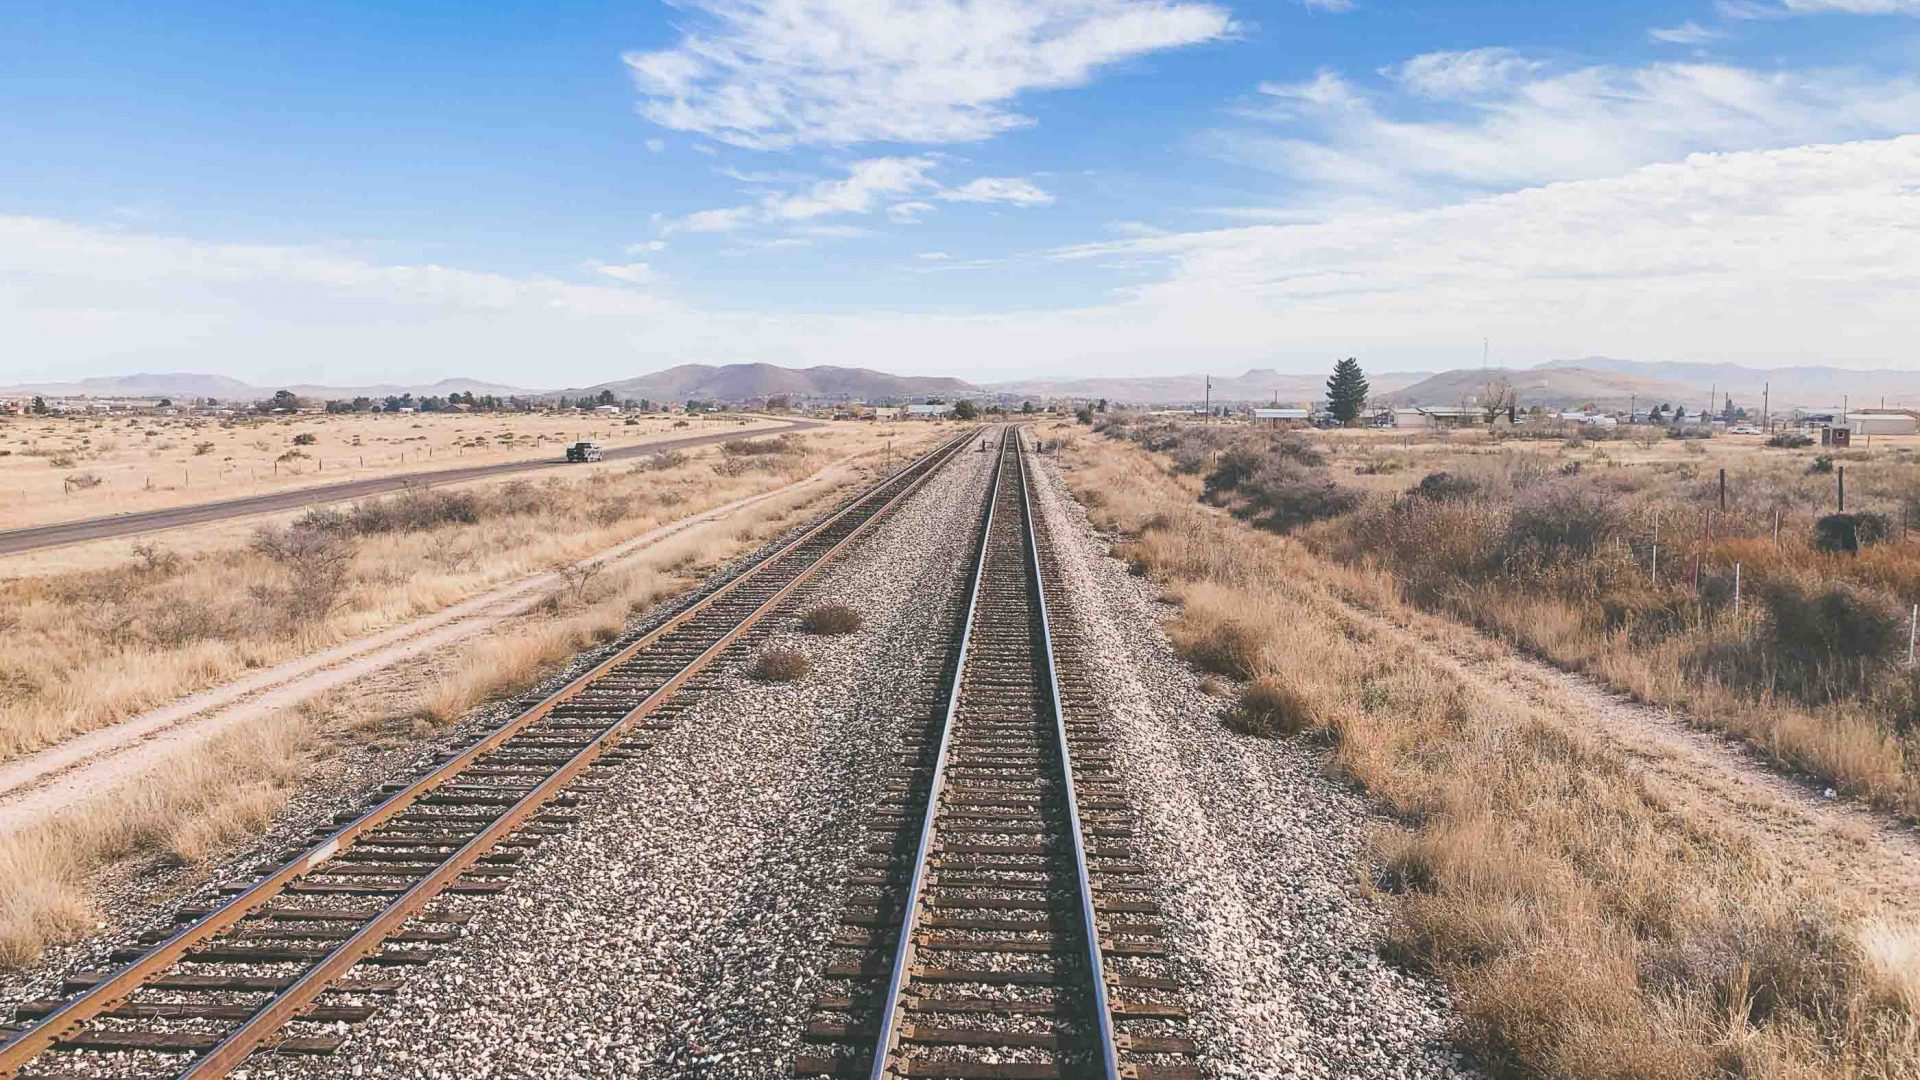 Train tracks head east over the desert in Texas.